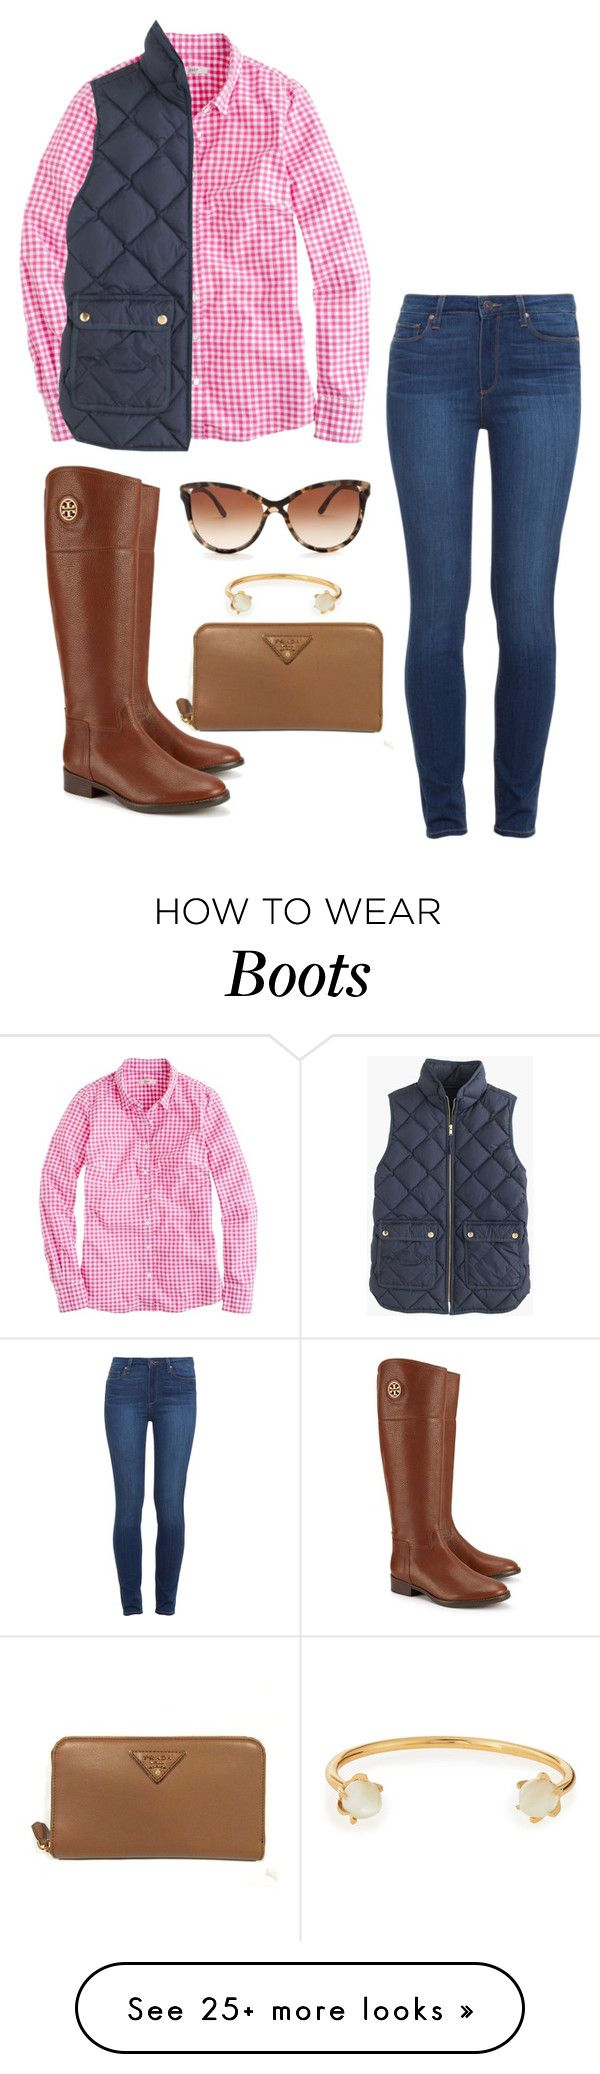 """tory burch riding boots"" by mcgeemaddie on Polyvore featuring Paige Denim, J.Crew, STELLA McCARTNEY, Tory Burch, Lizzie Fortunato and Prada"